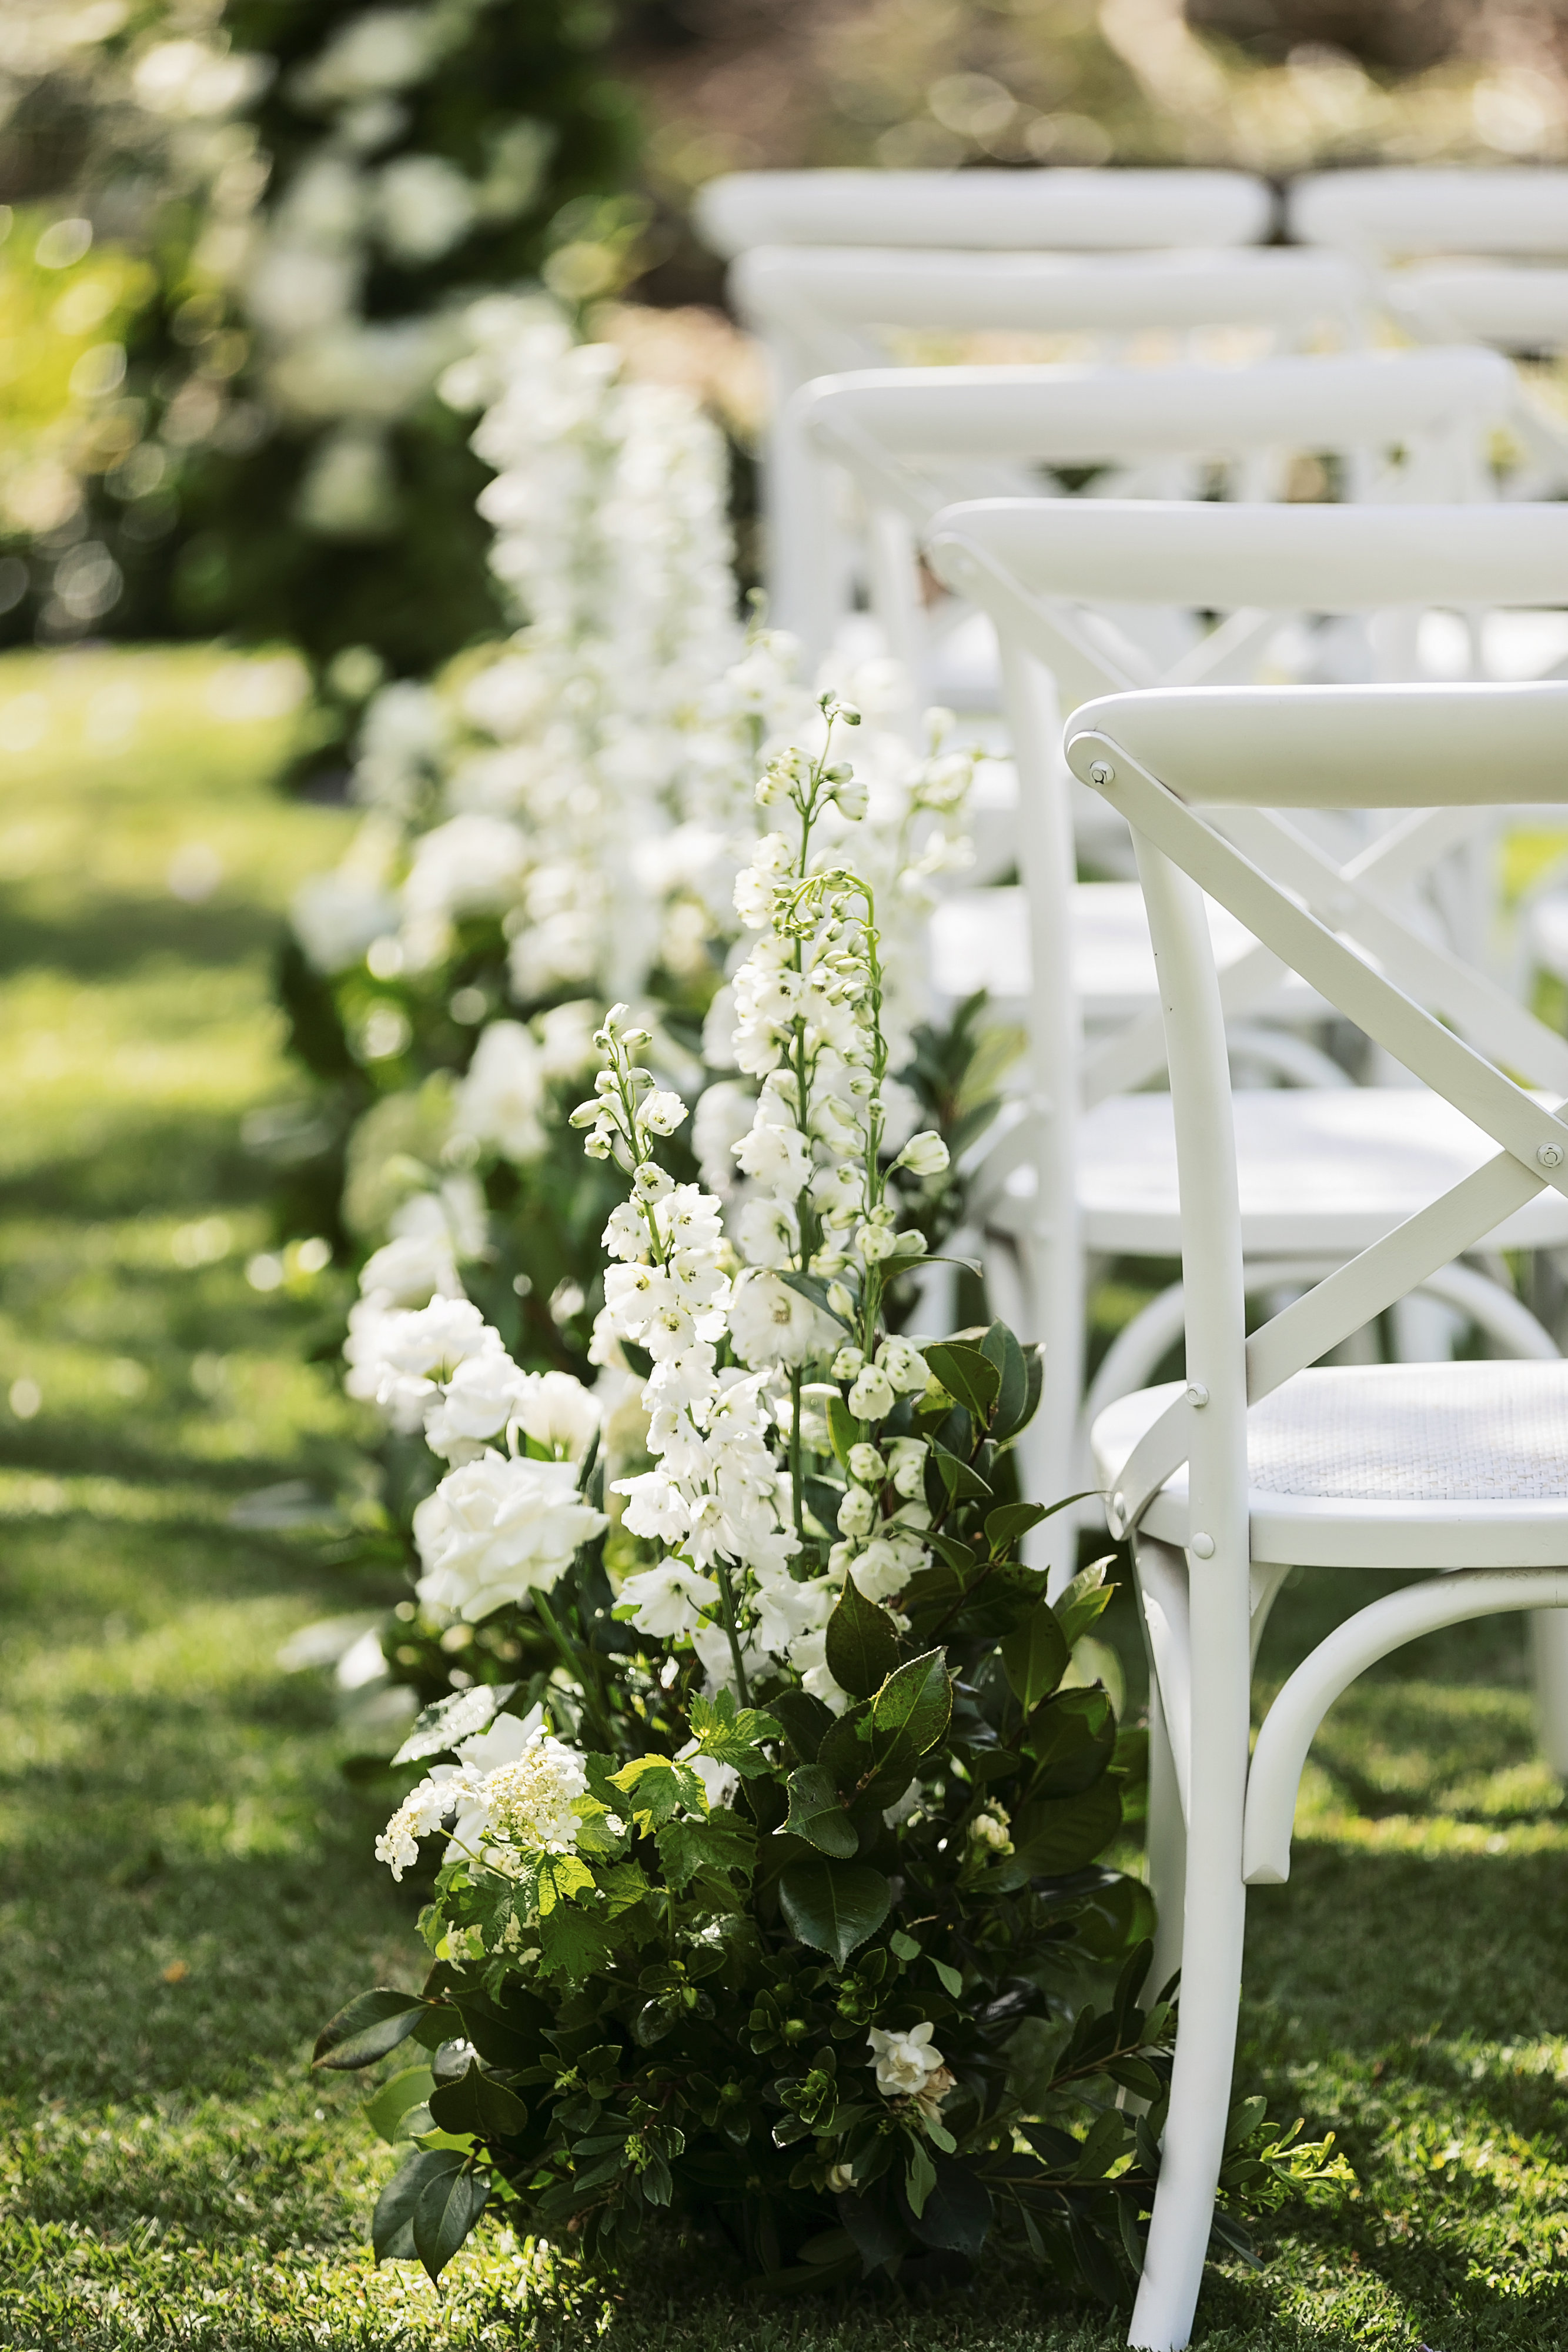 Ceremony aisle hedging of lush greenery and white blooms